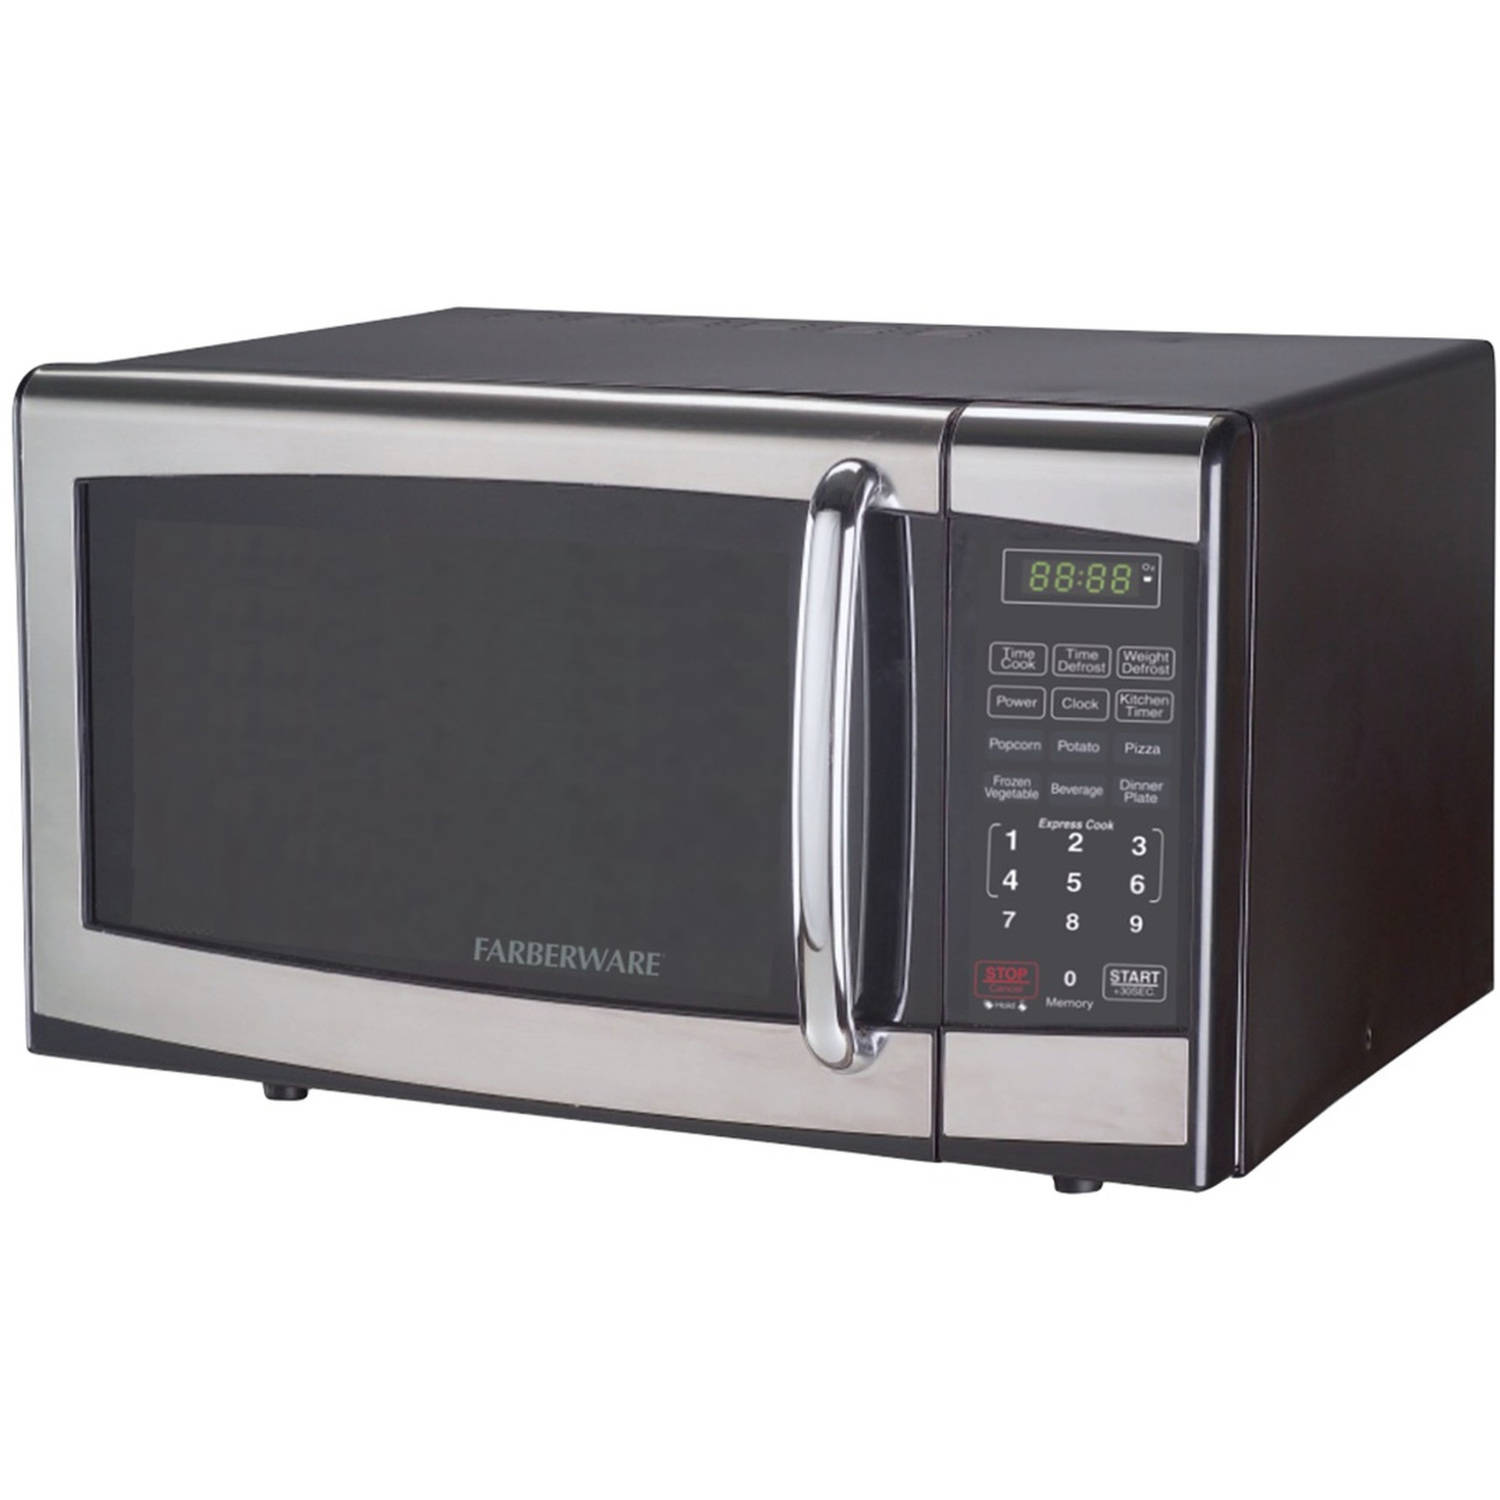 Farberware 0.9 cu ft Microwave Oven, Stainless Steel Black by Edge